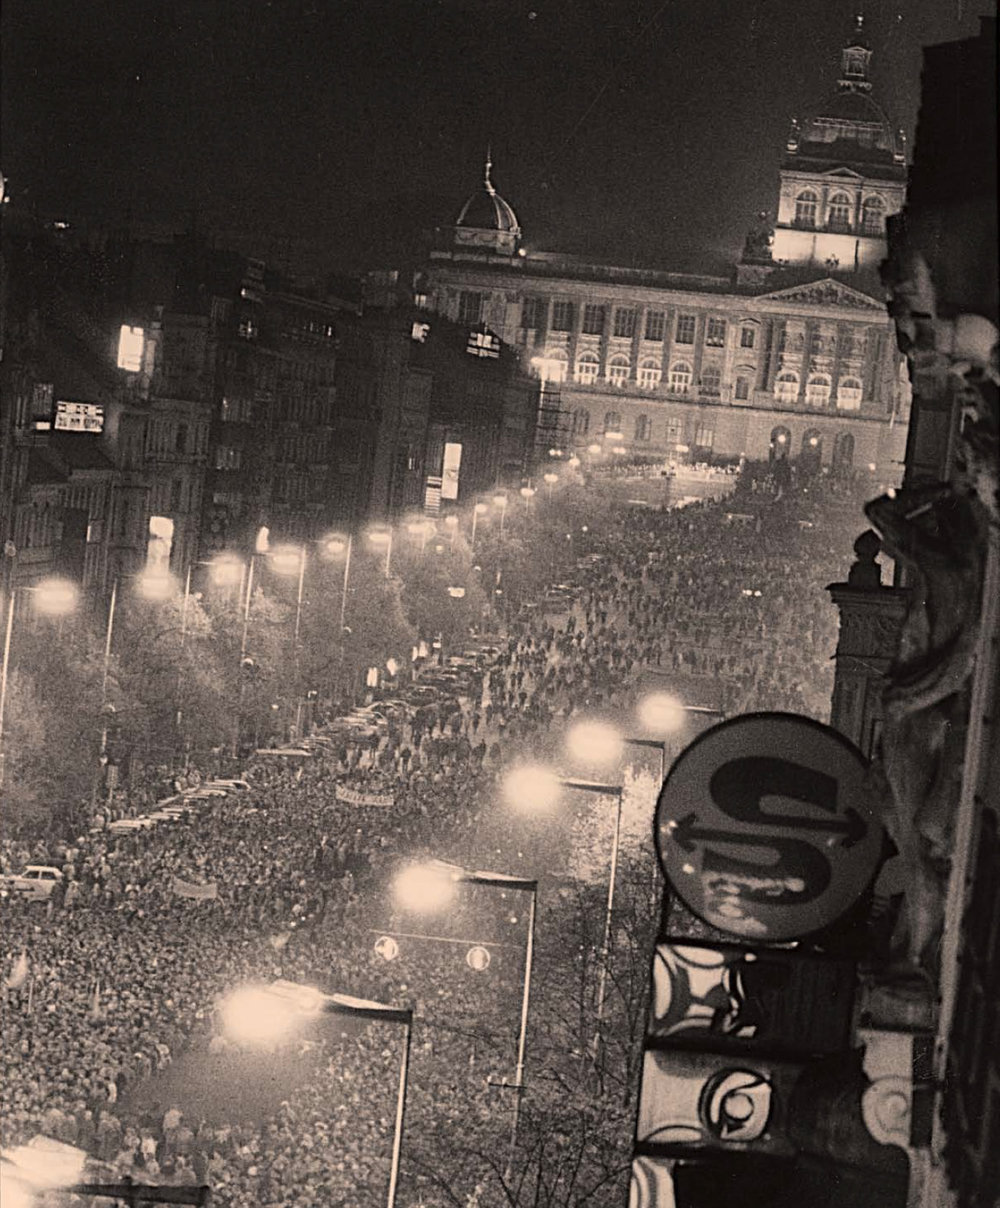 In late November hundreds of thousands of Czechs and Slovaks gather on Wenceslav Square and bring down the Communist government.